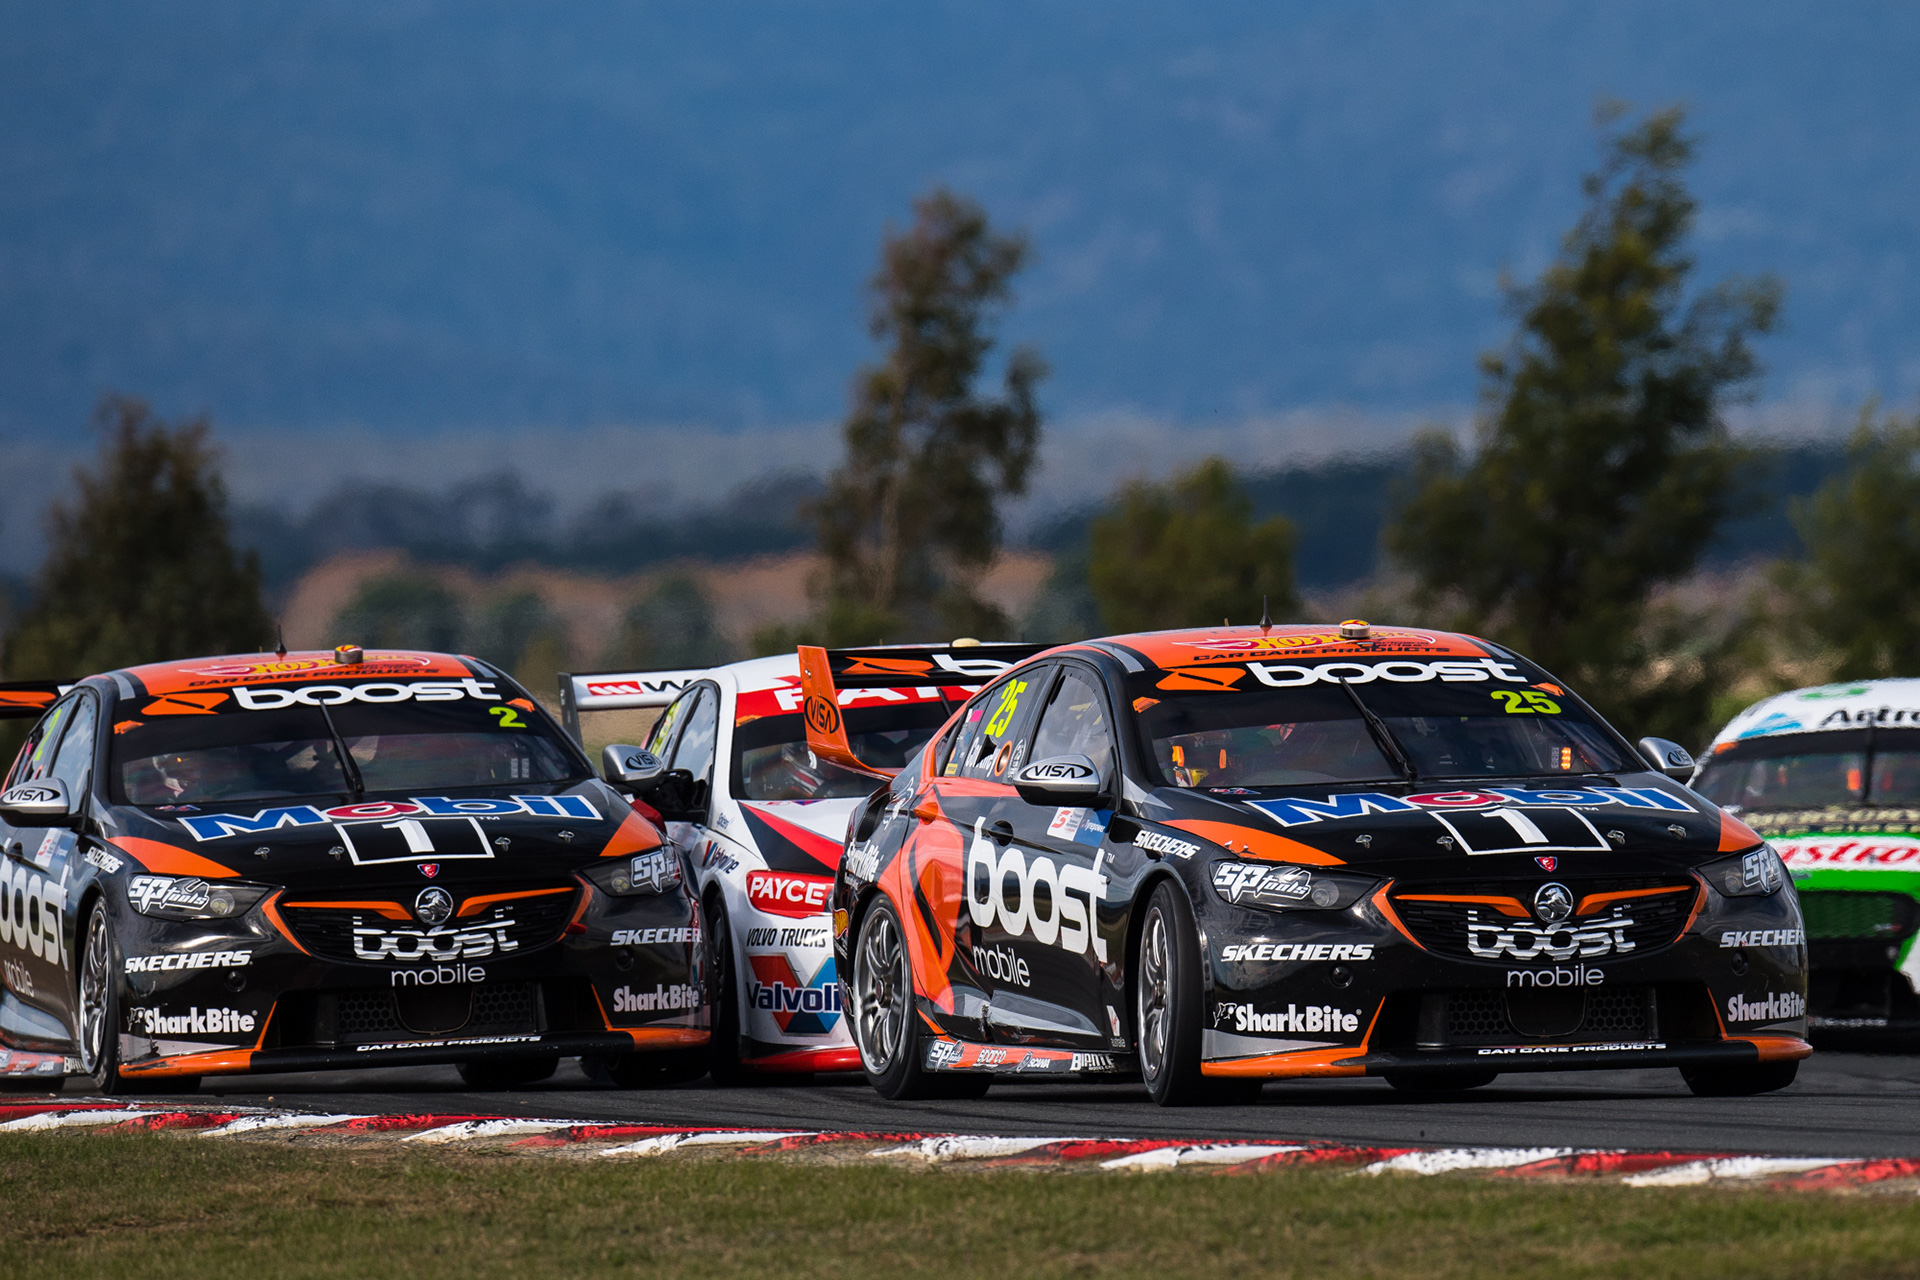 We leave Tassie 2nd in the Teams Championship.